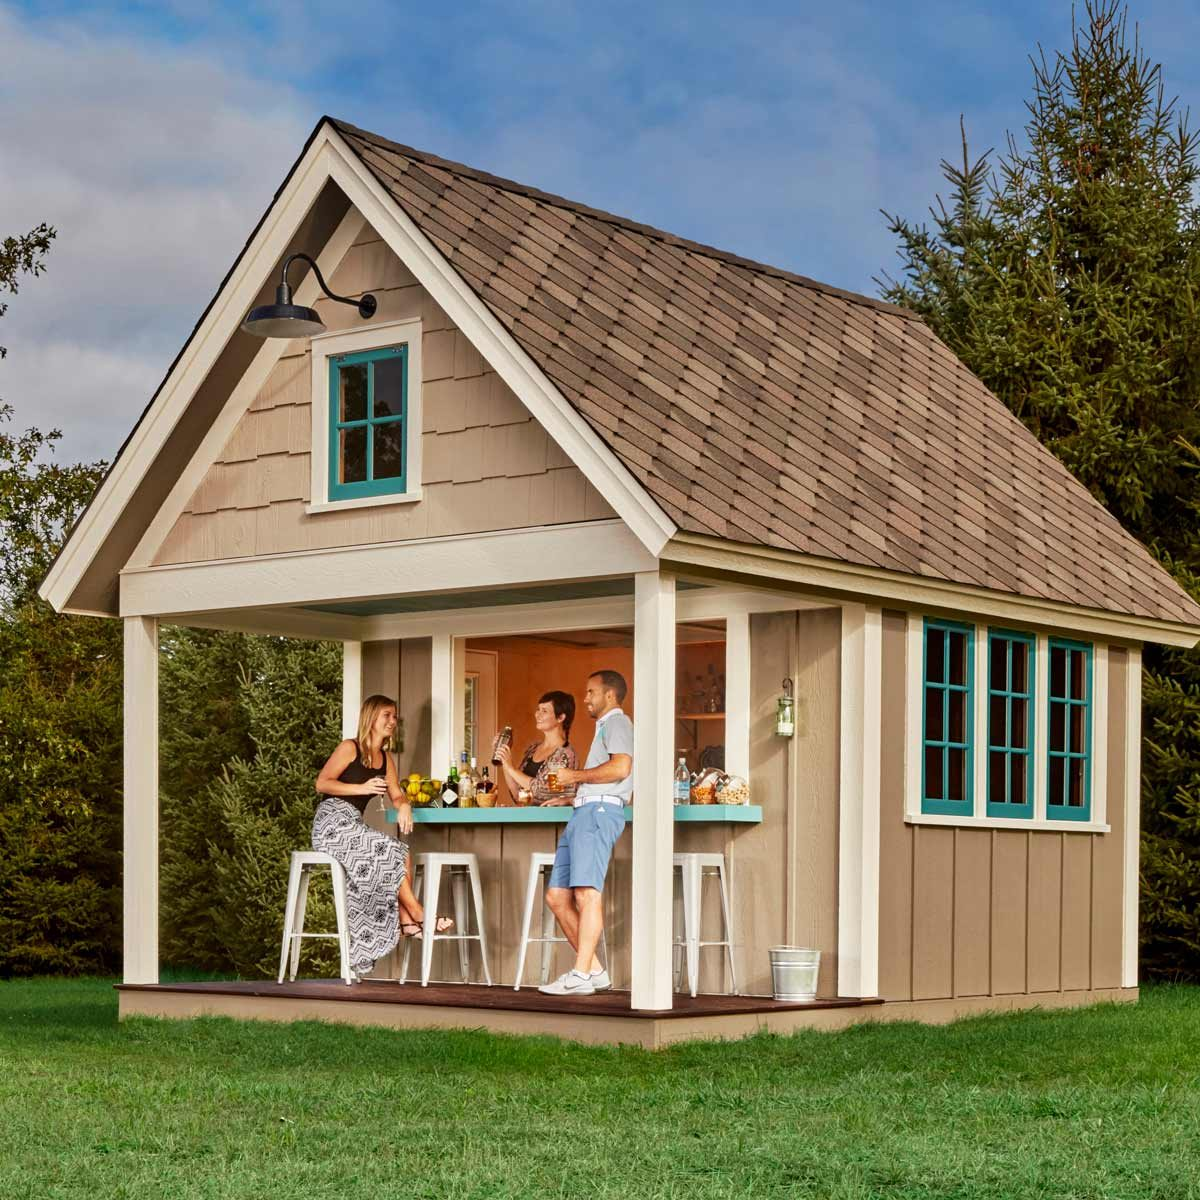 Multi Family Home Floor Plans The Double Duty Pub Shed The Family Handyman